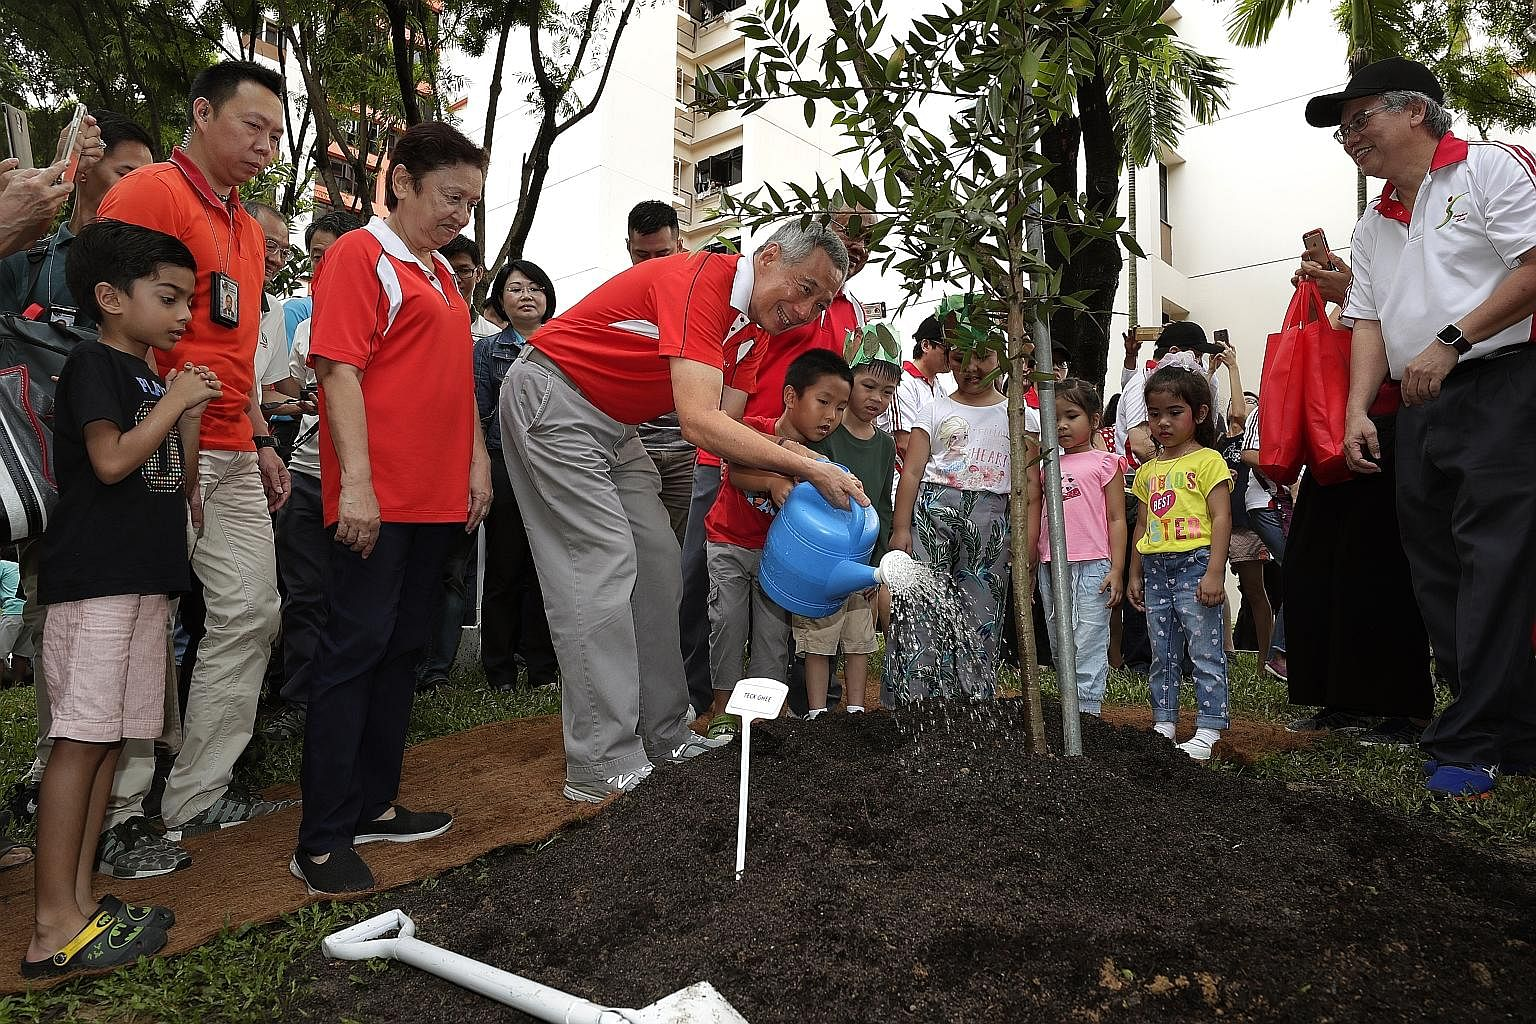 Prime Minister Lee Hsien Loong watering a tree he planted in front of Block 405A Fernvale Lane in Sengkang at an annual tree-planting event yesterday. 	He and his fellow Ang Mo Kio GRC MPs - Dr Koh Poh Koon, Mr Ang Hin Kee and Mr Gan Thiam Poh - as w